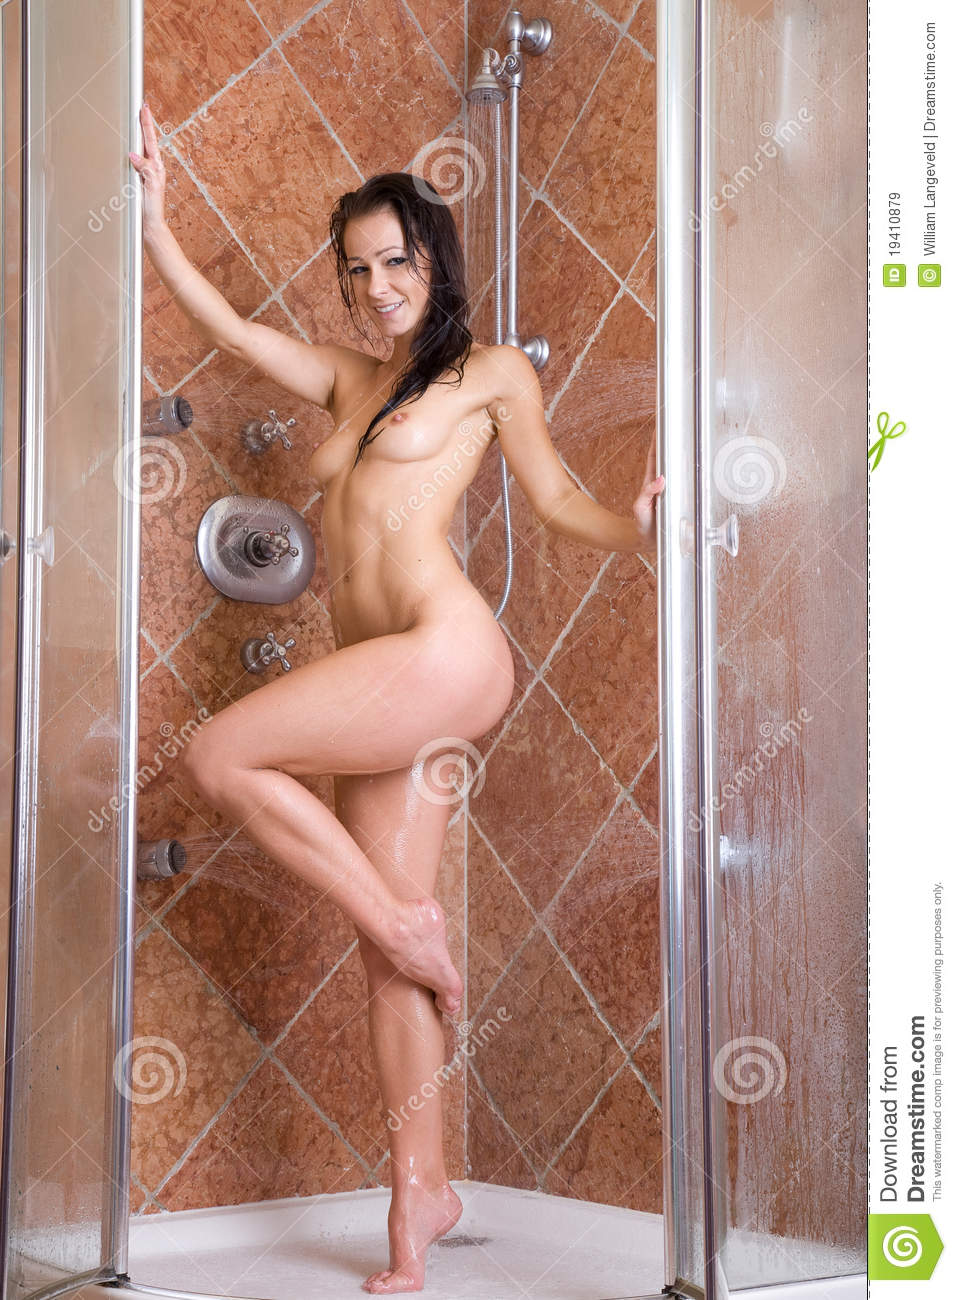 Girls in showers hot naked